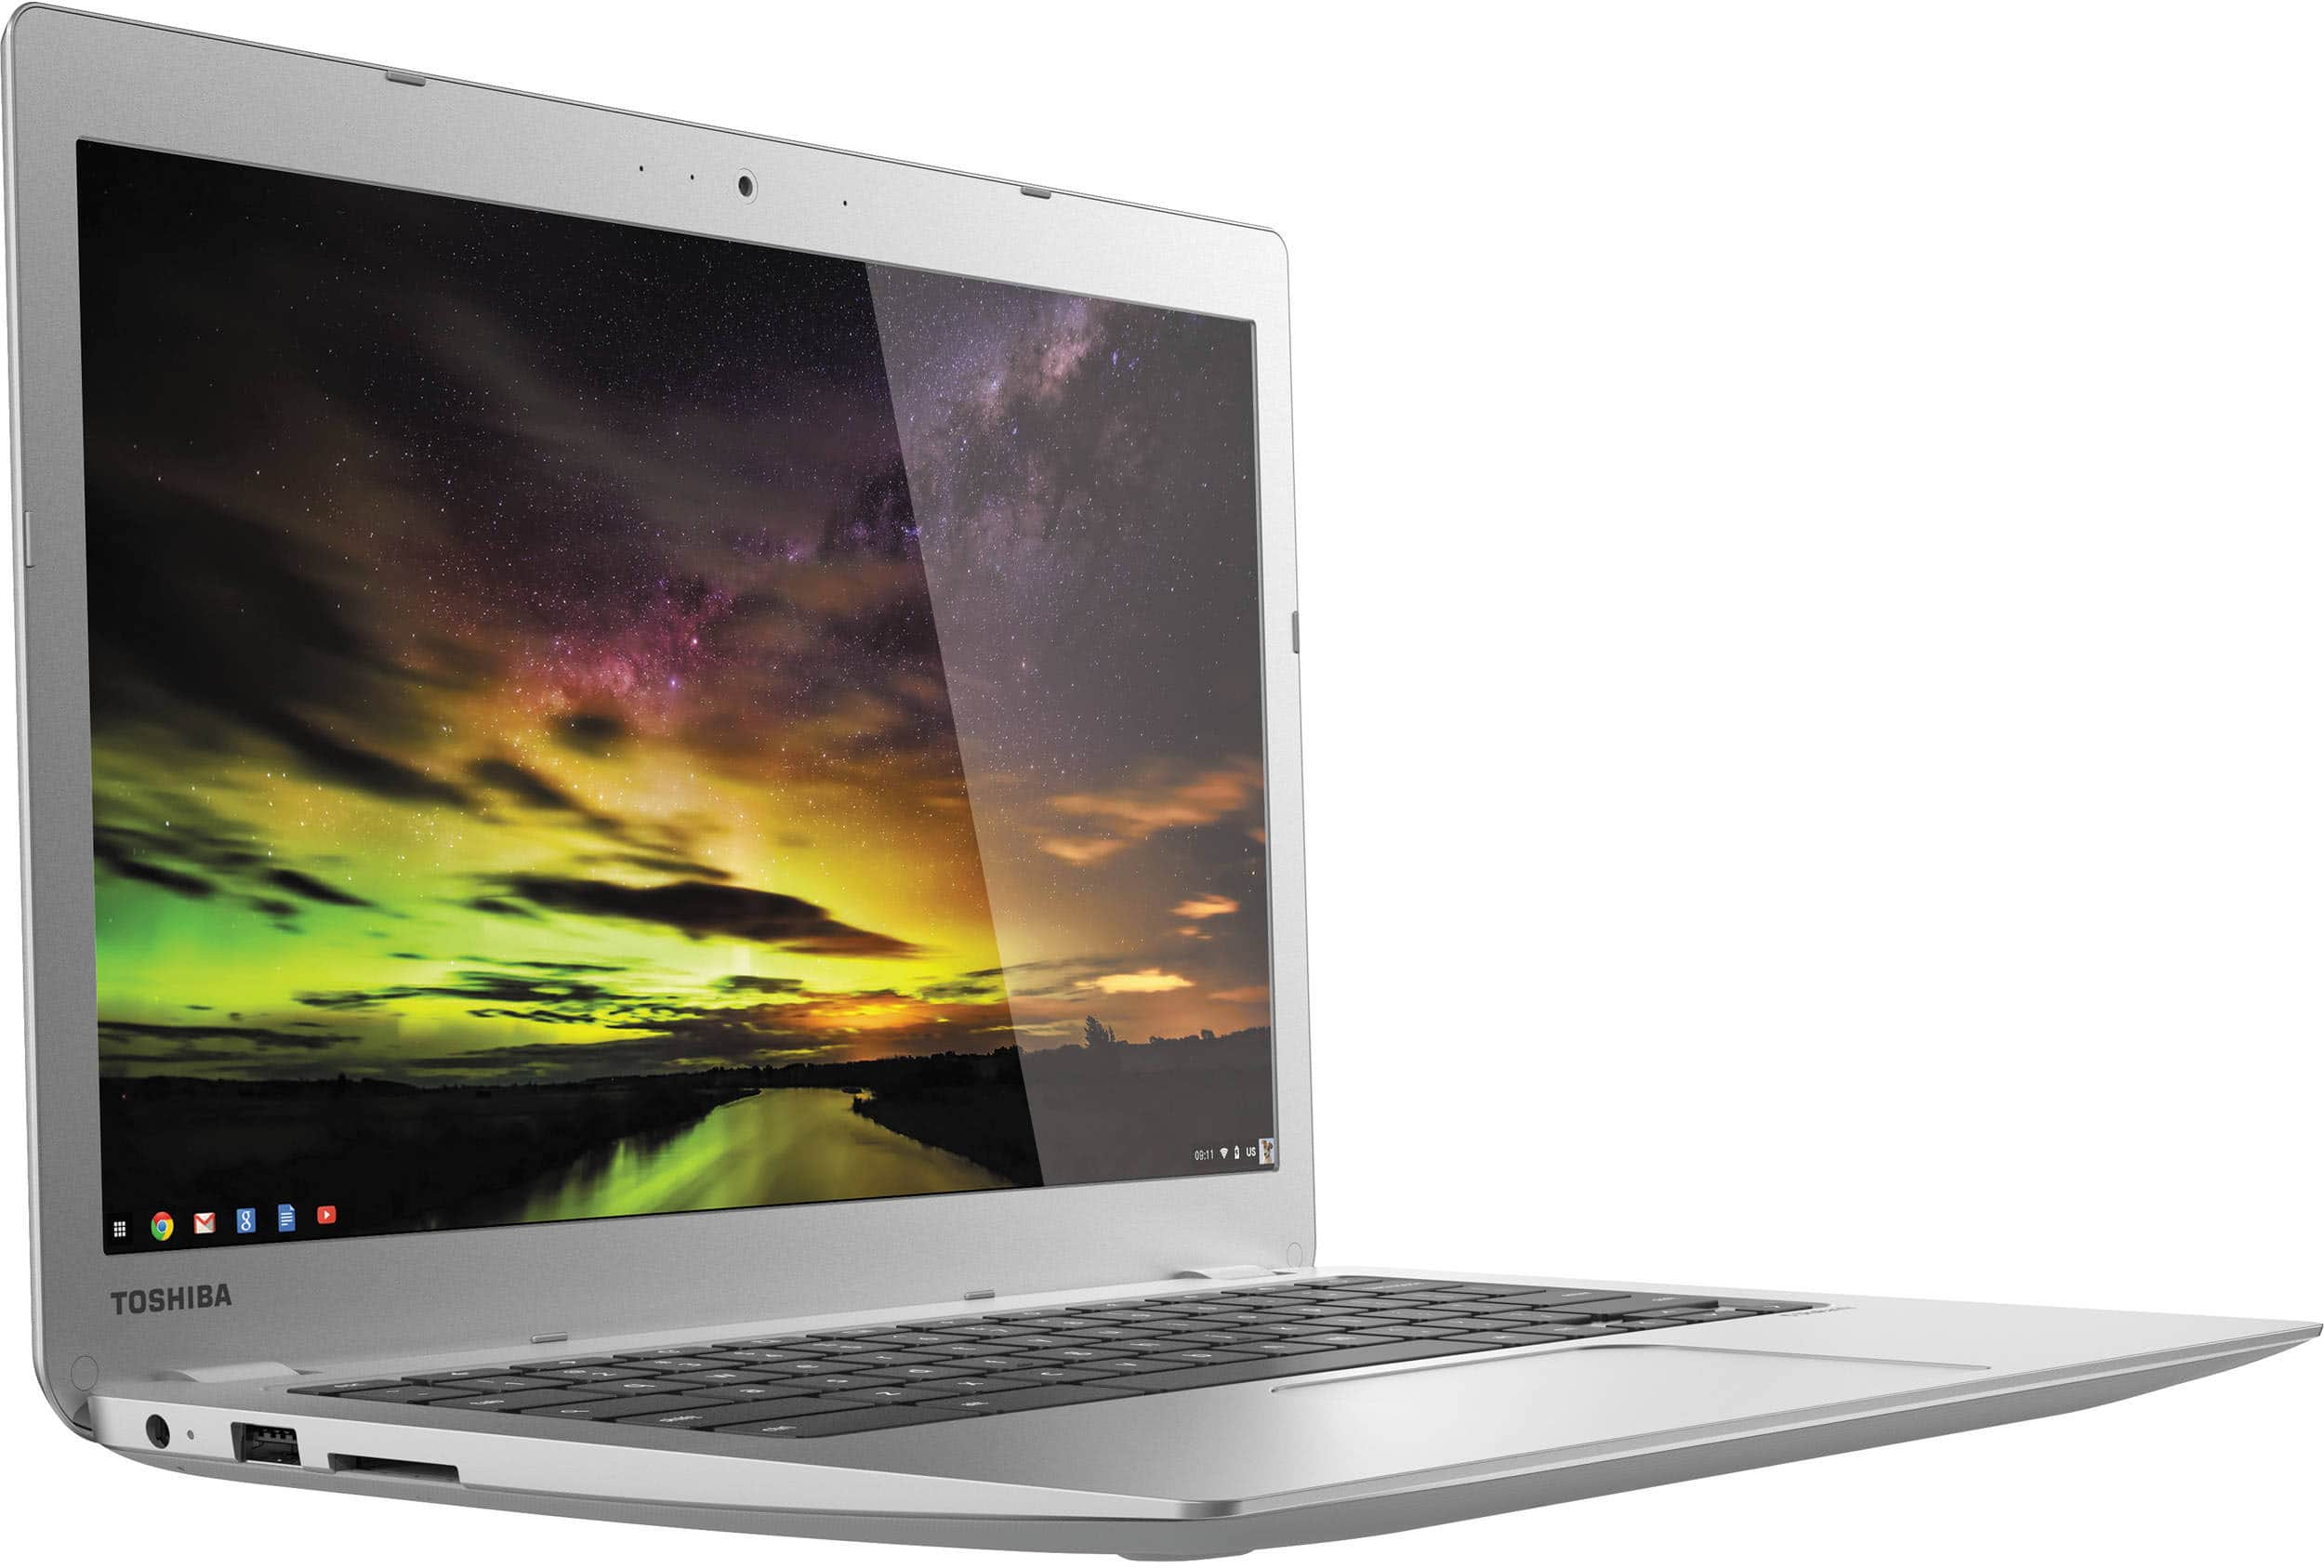 "Toshiba 13.3"" Chromebook 2, CB35-B3340, refurbished $160 + s/h Meh"